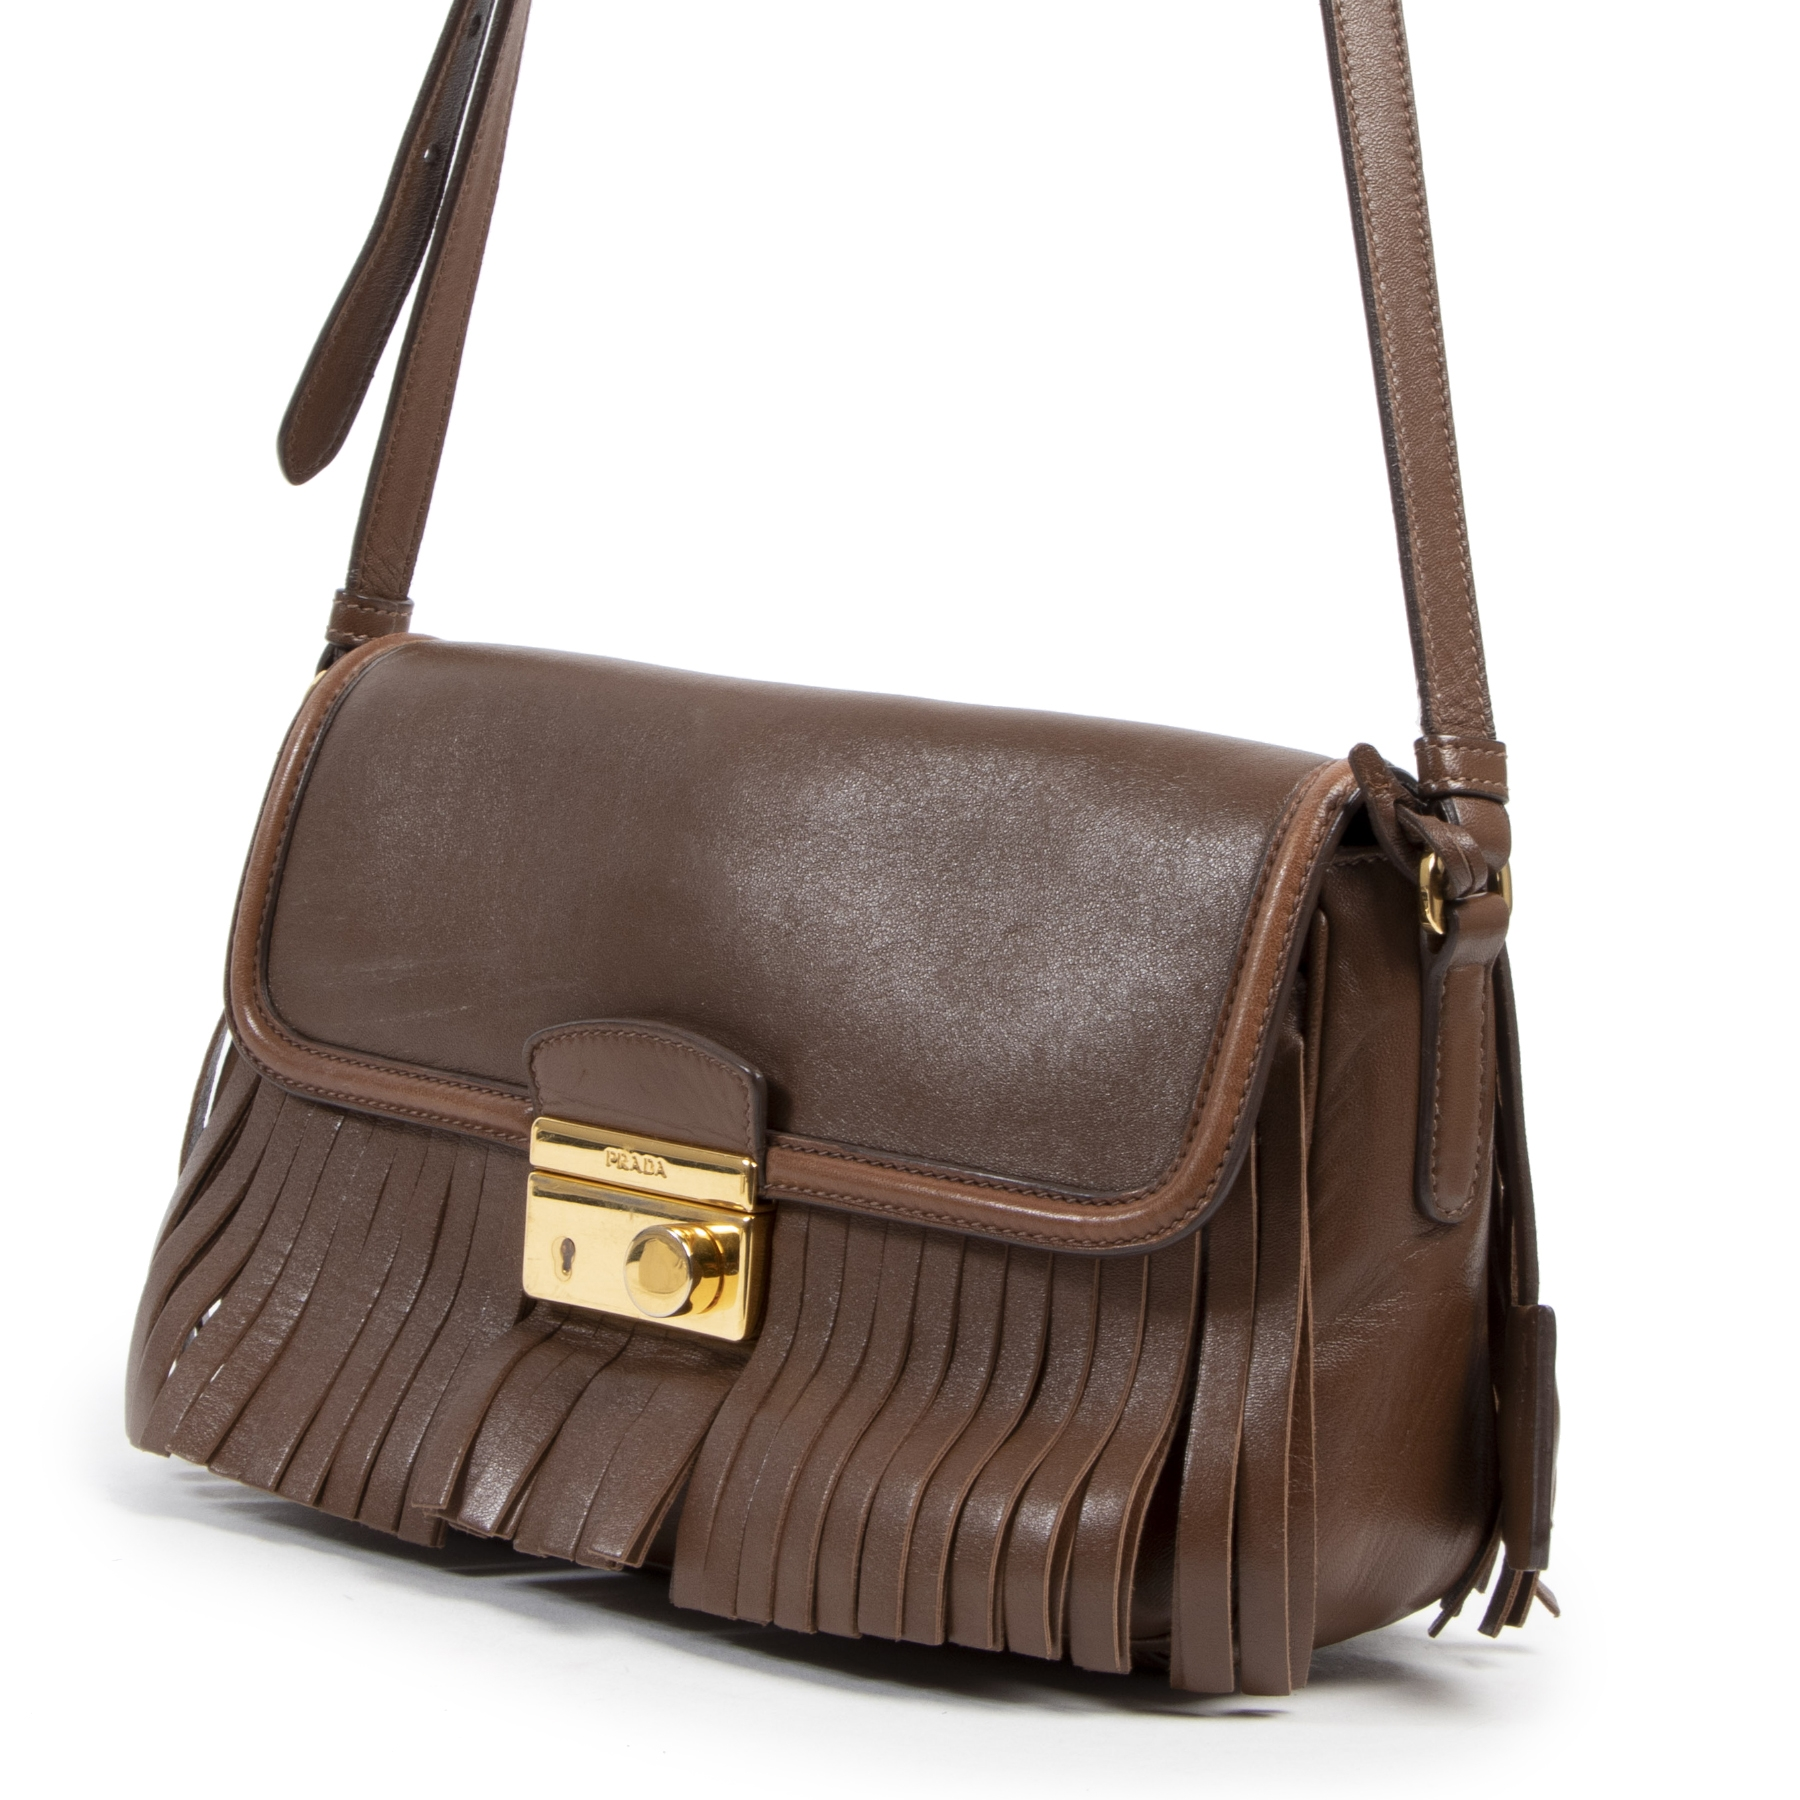 Authentic secondhand Prada Brown Fringe Crossbody Bag designer bags fashion luxury vintage webshop safe secure online shopping designer high end brands